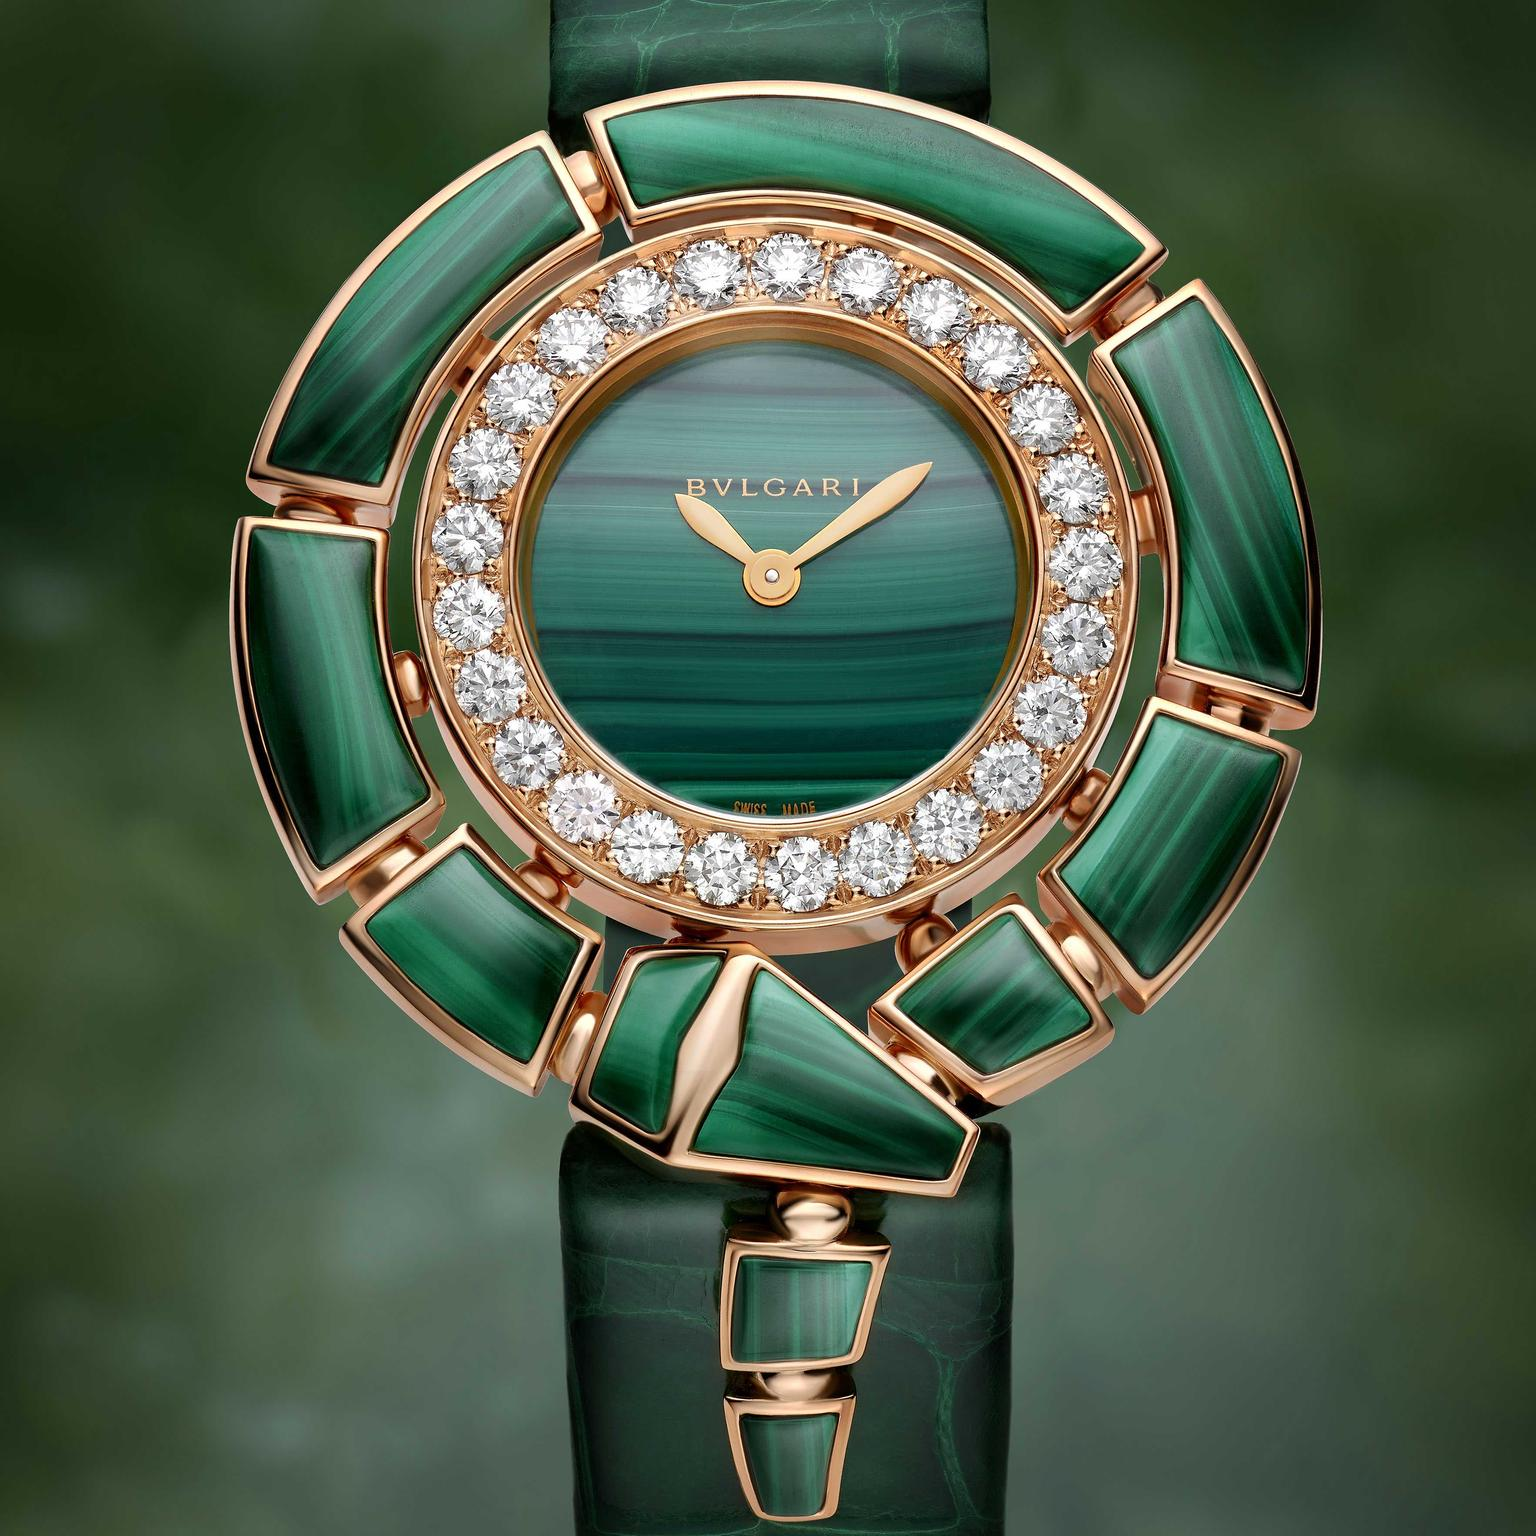 Bulgari Serpenti Incantati malachite wat